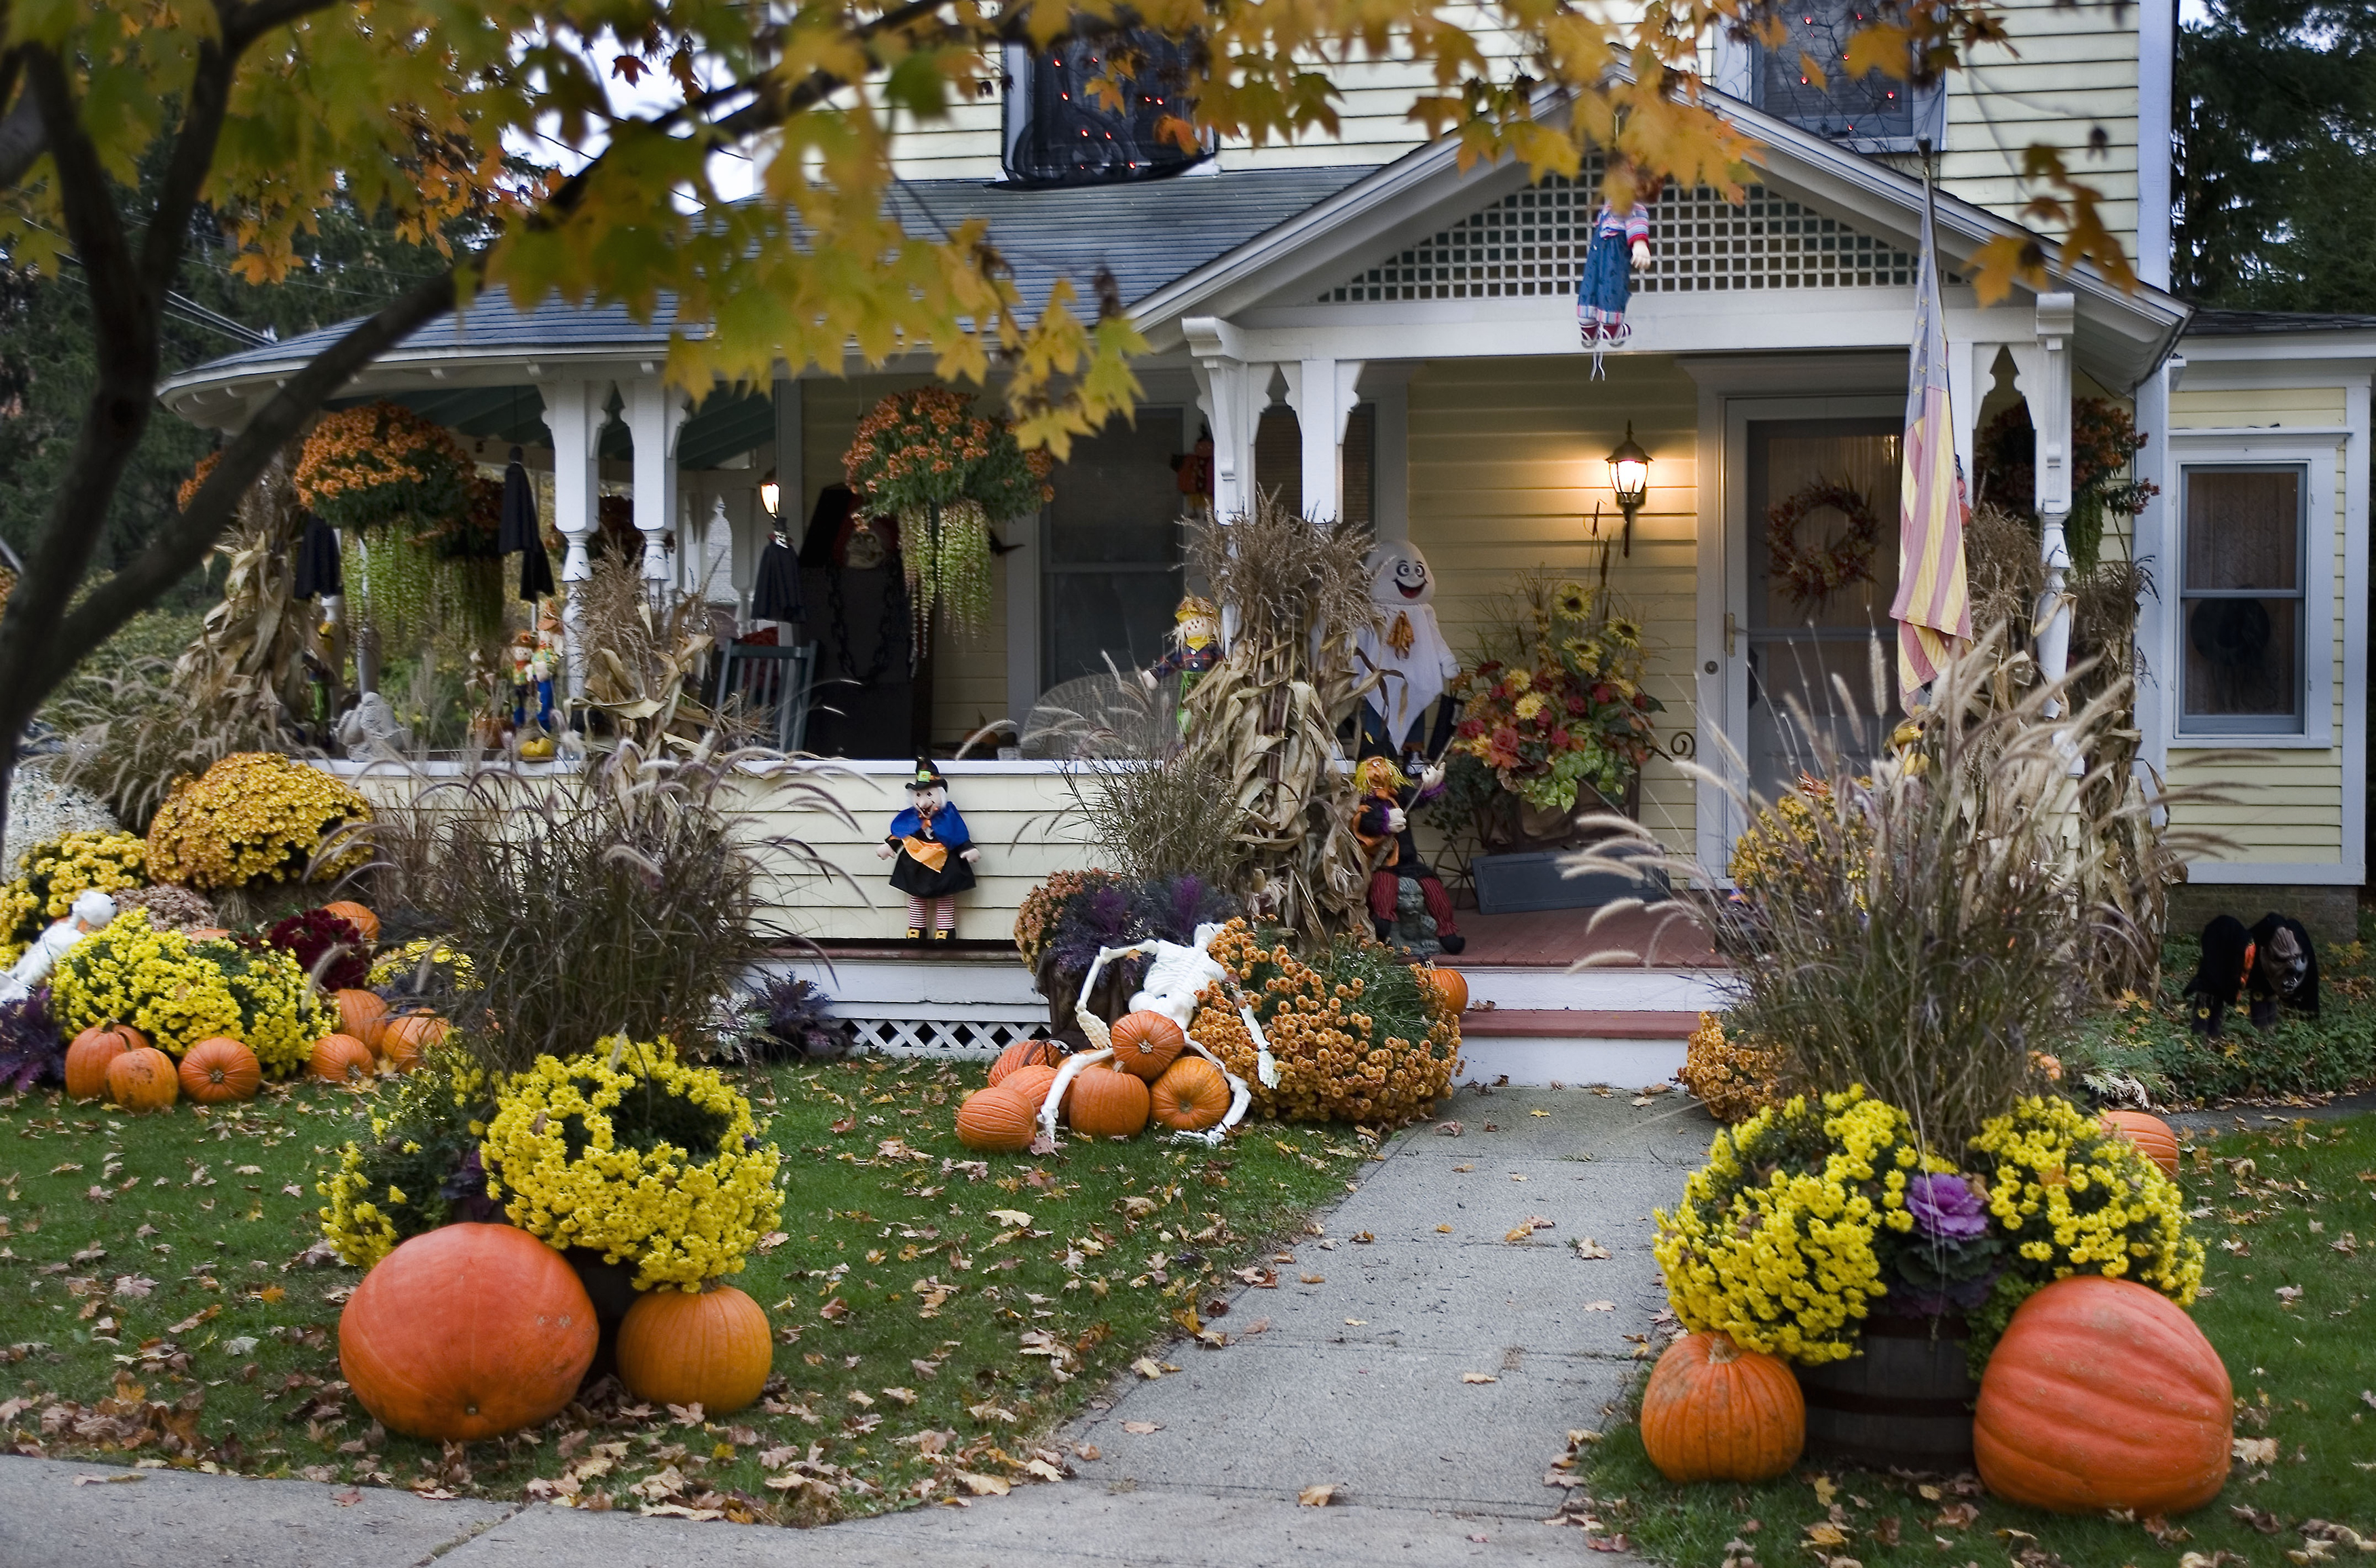 10 Best Outdoor Halloween Decorations - Porch Decor Ideas ... on Lawn Decorating Ideas id=41349